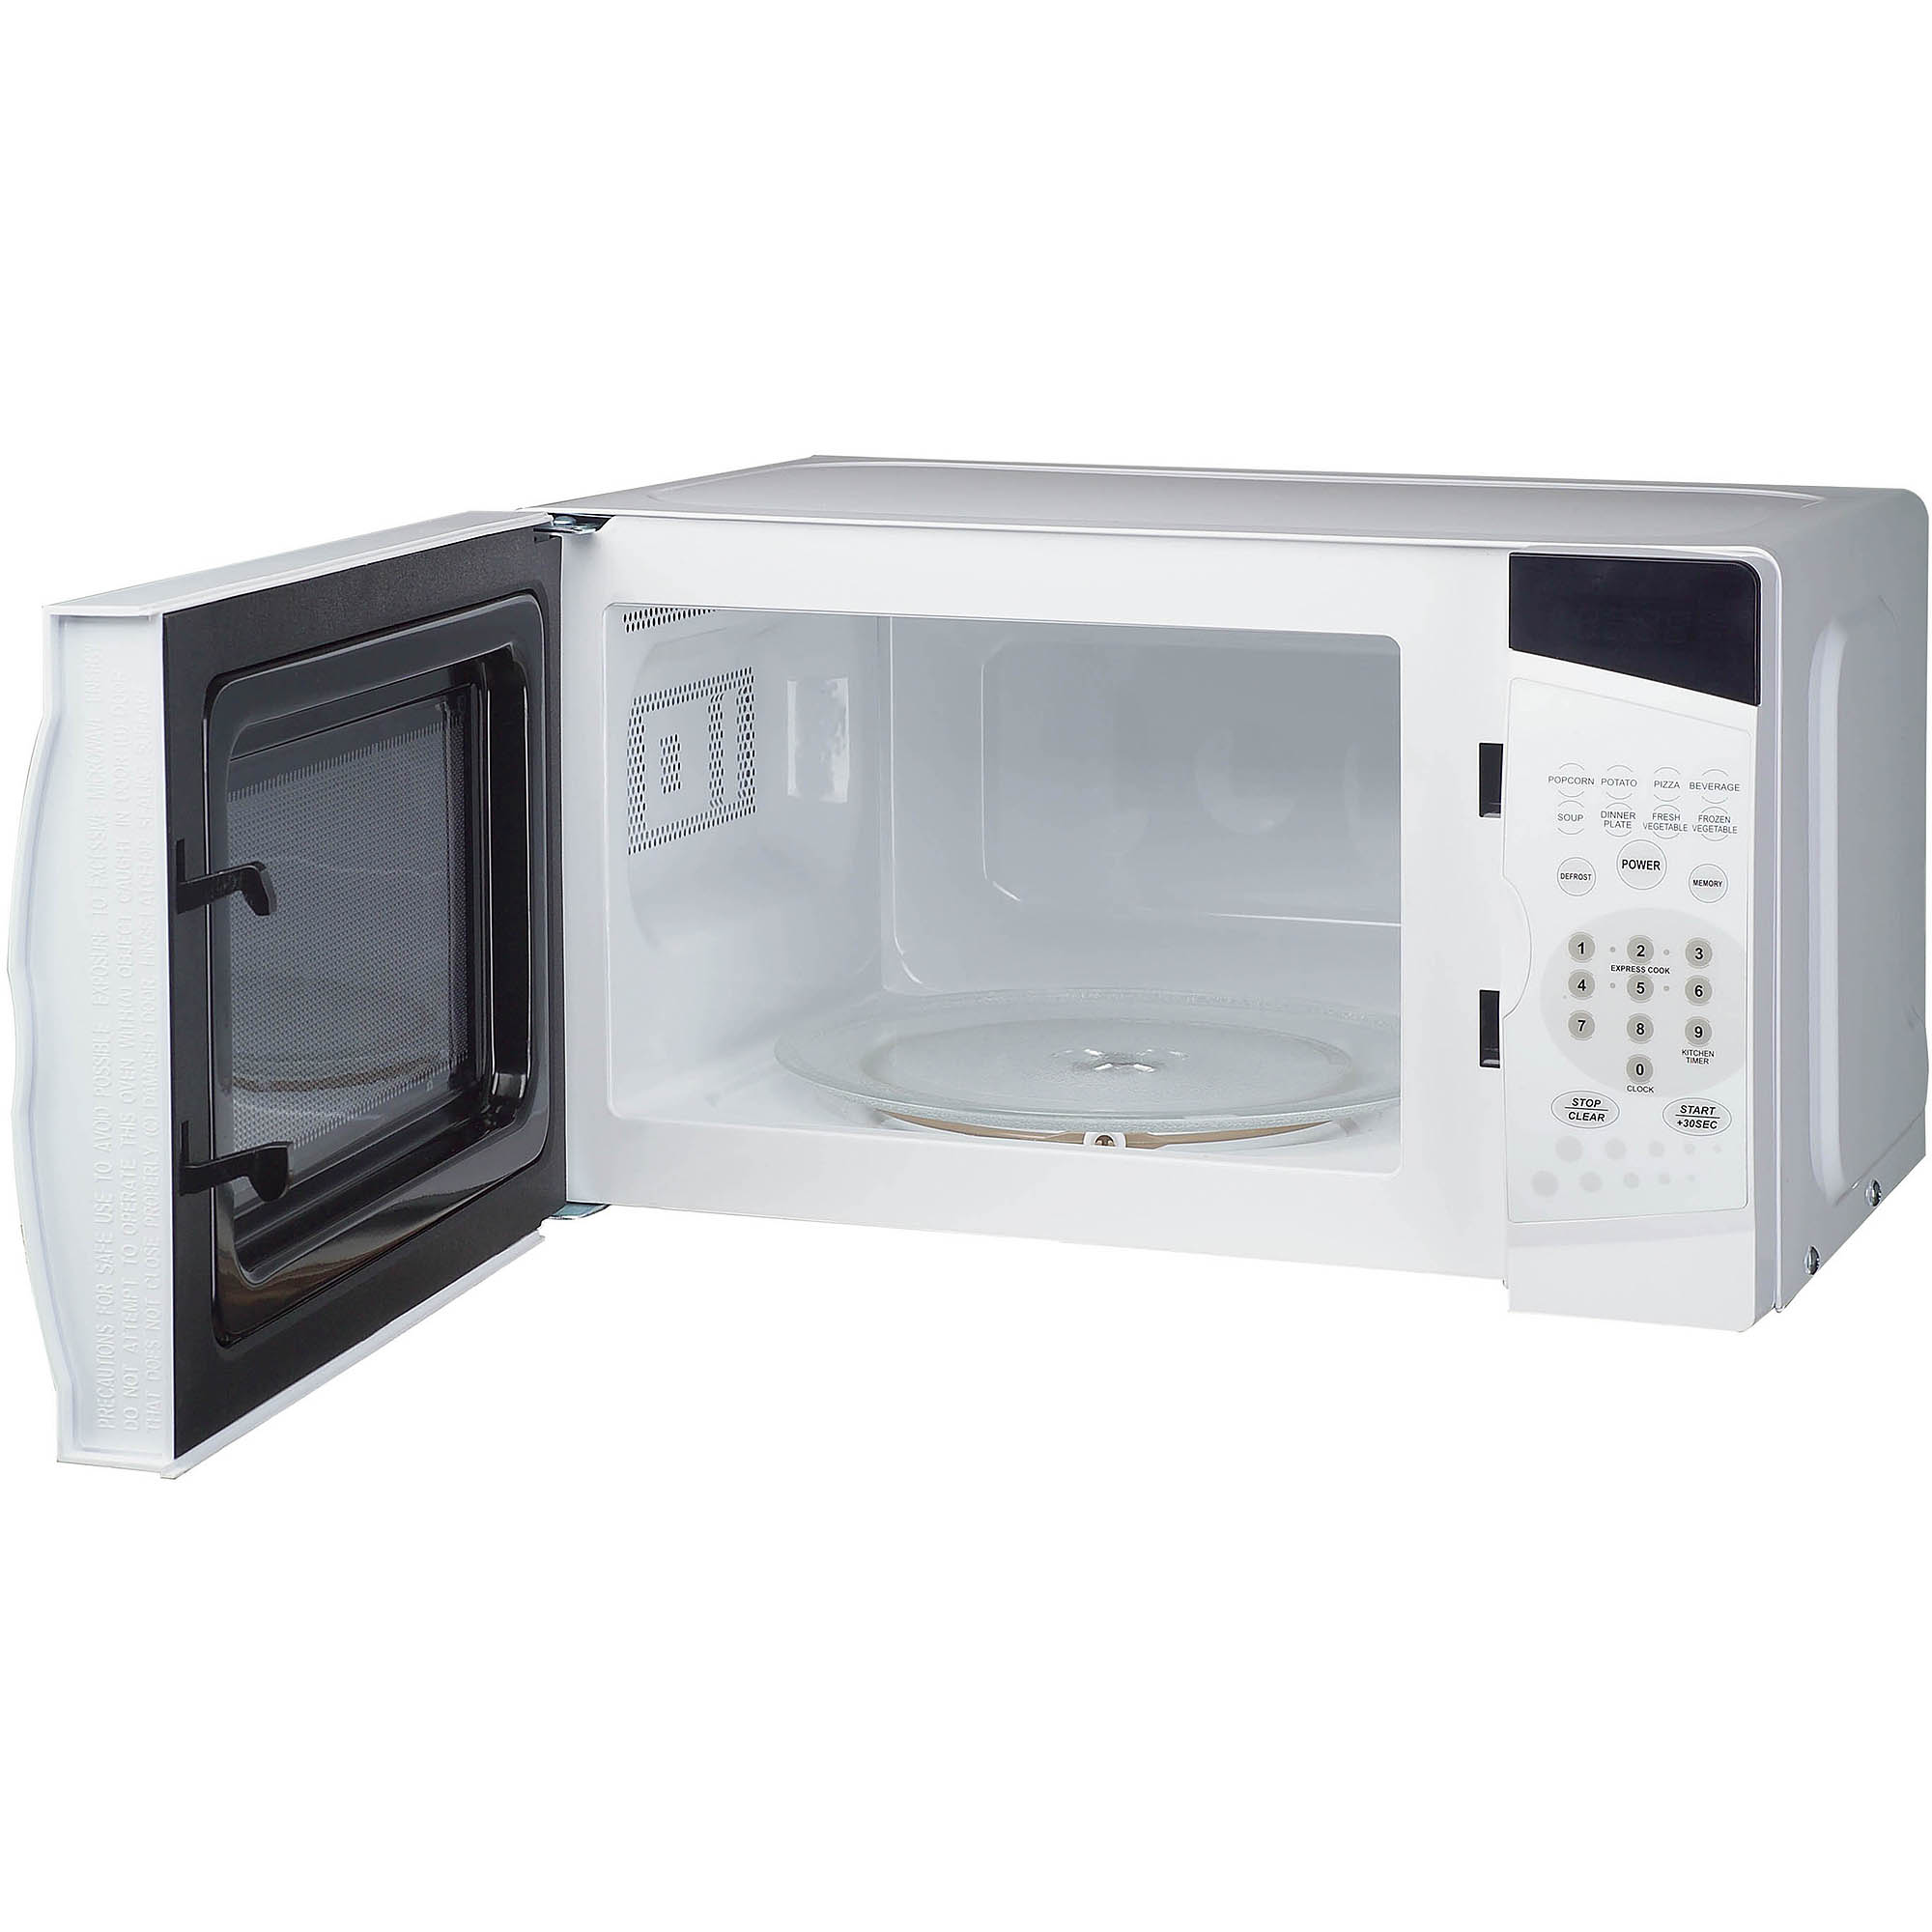 Magic Chef 0.7 cu ft Countertop Microwave, White